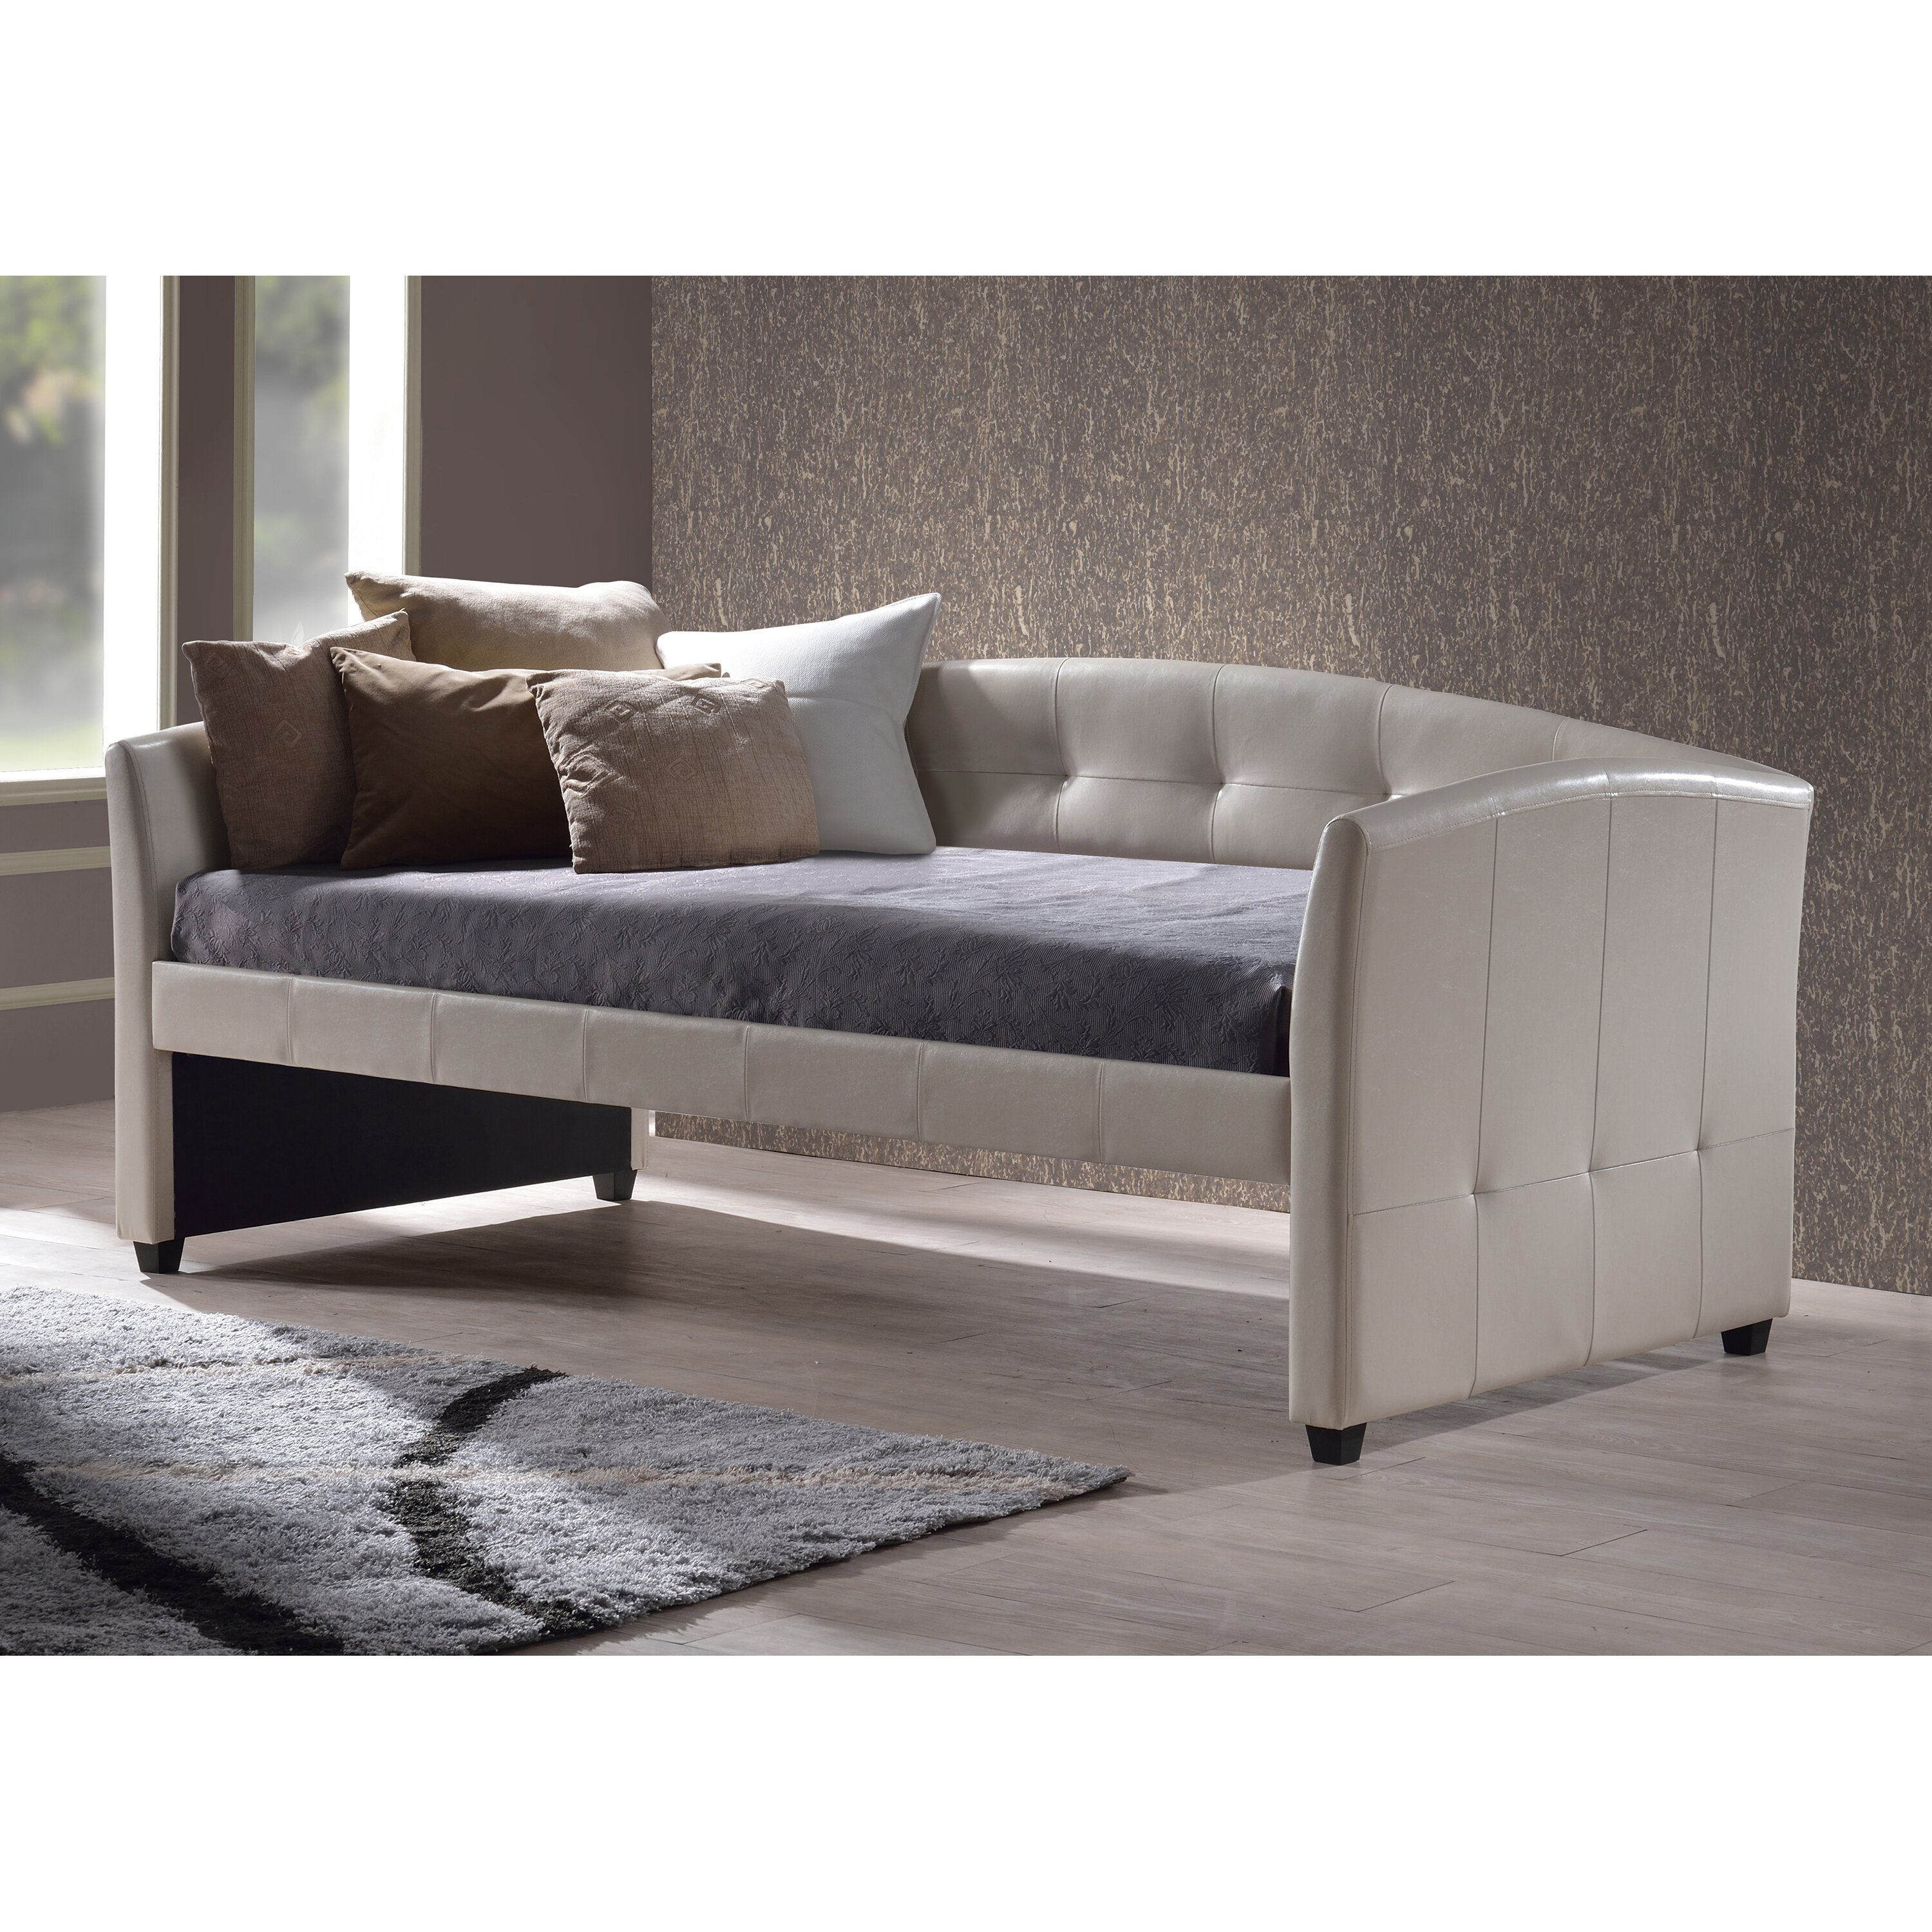 Hillsdale napoli daybed reviews wayfair for Furniture 2 day shipping